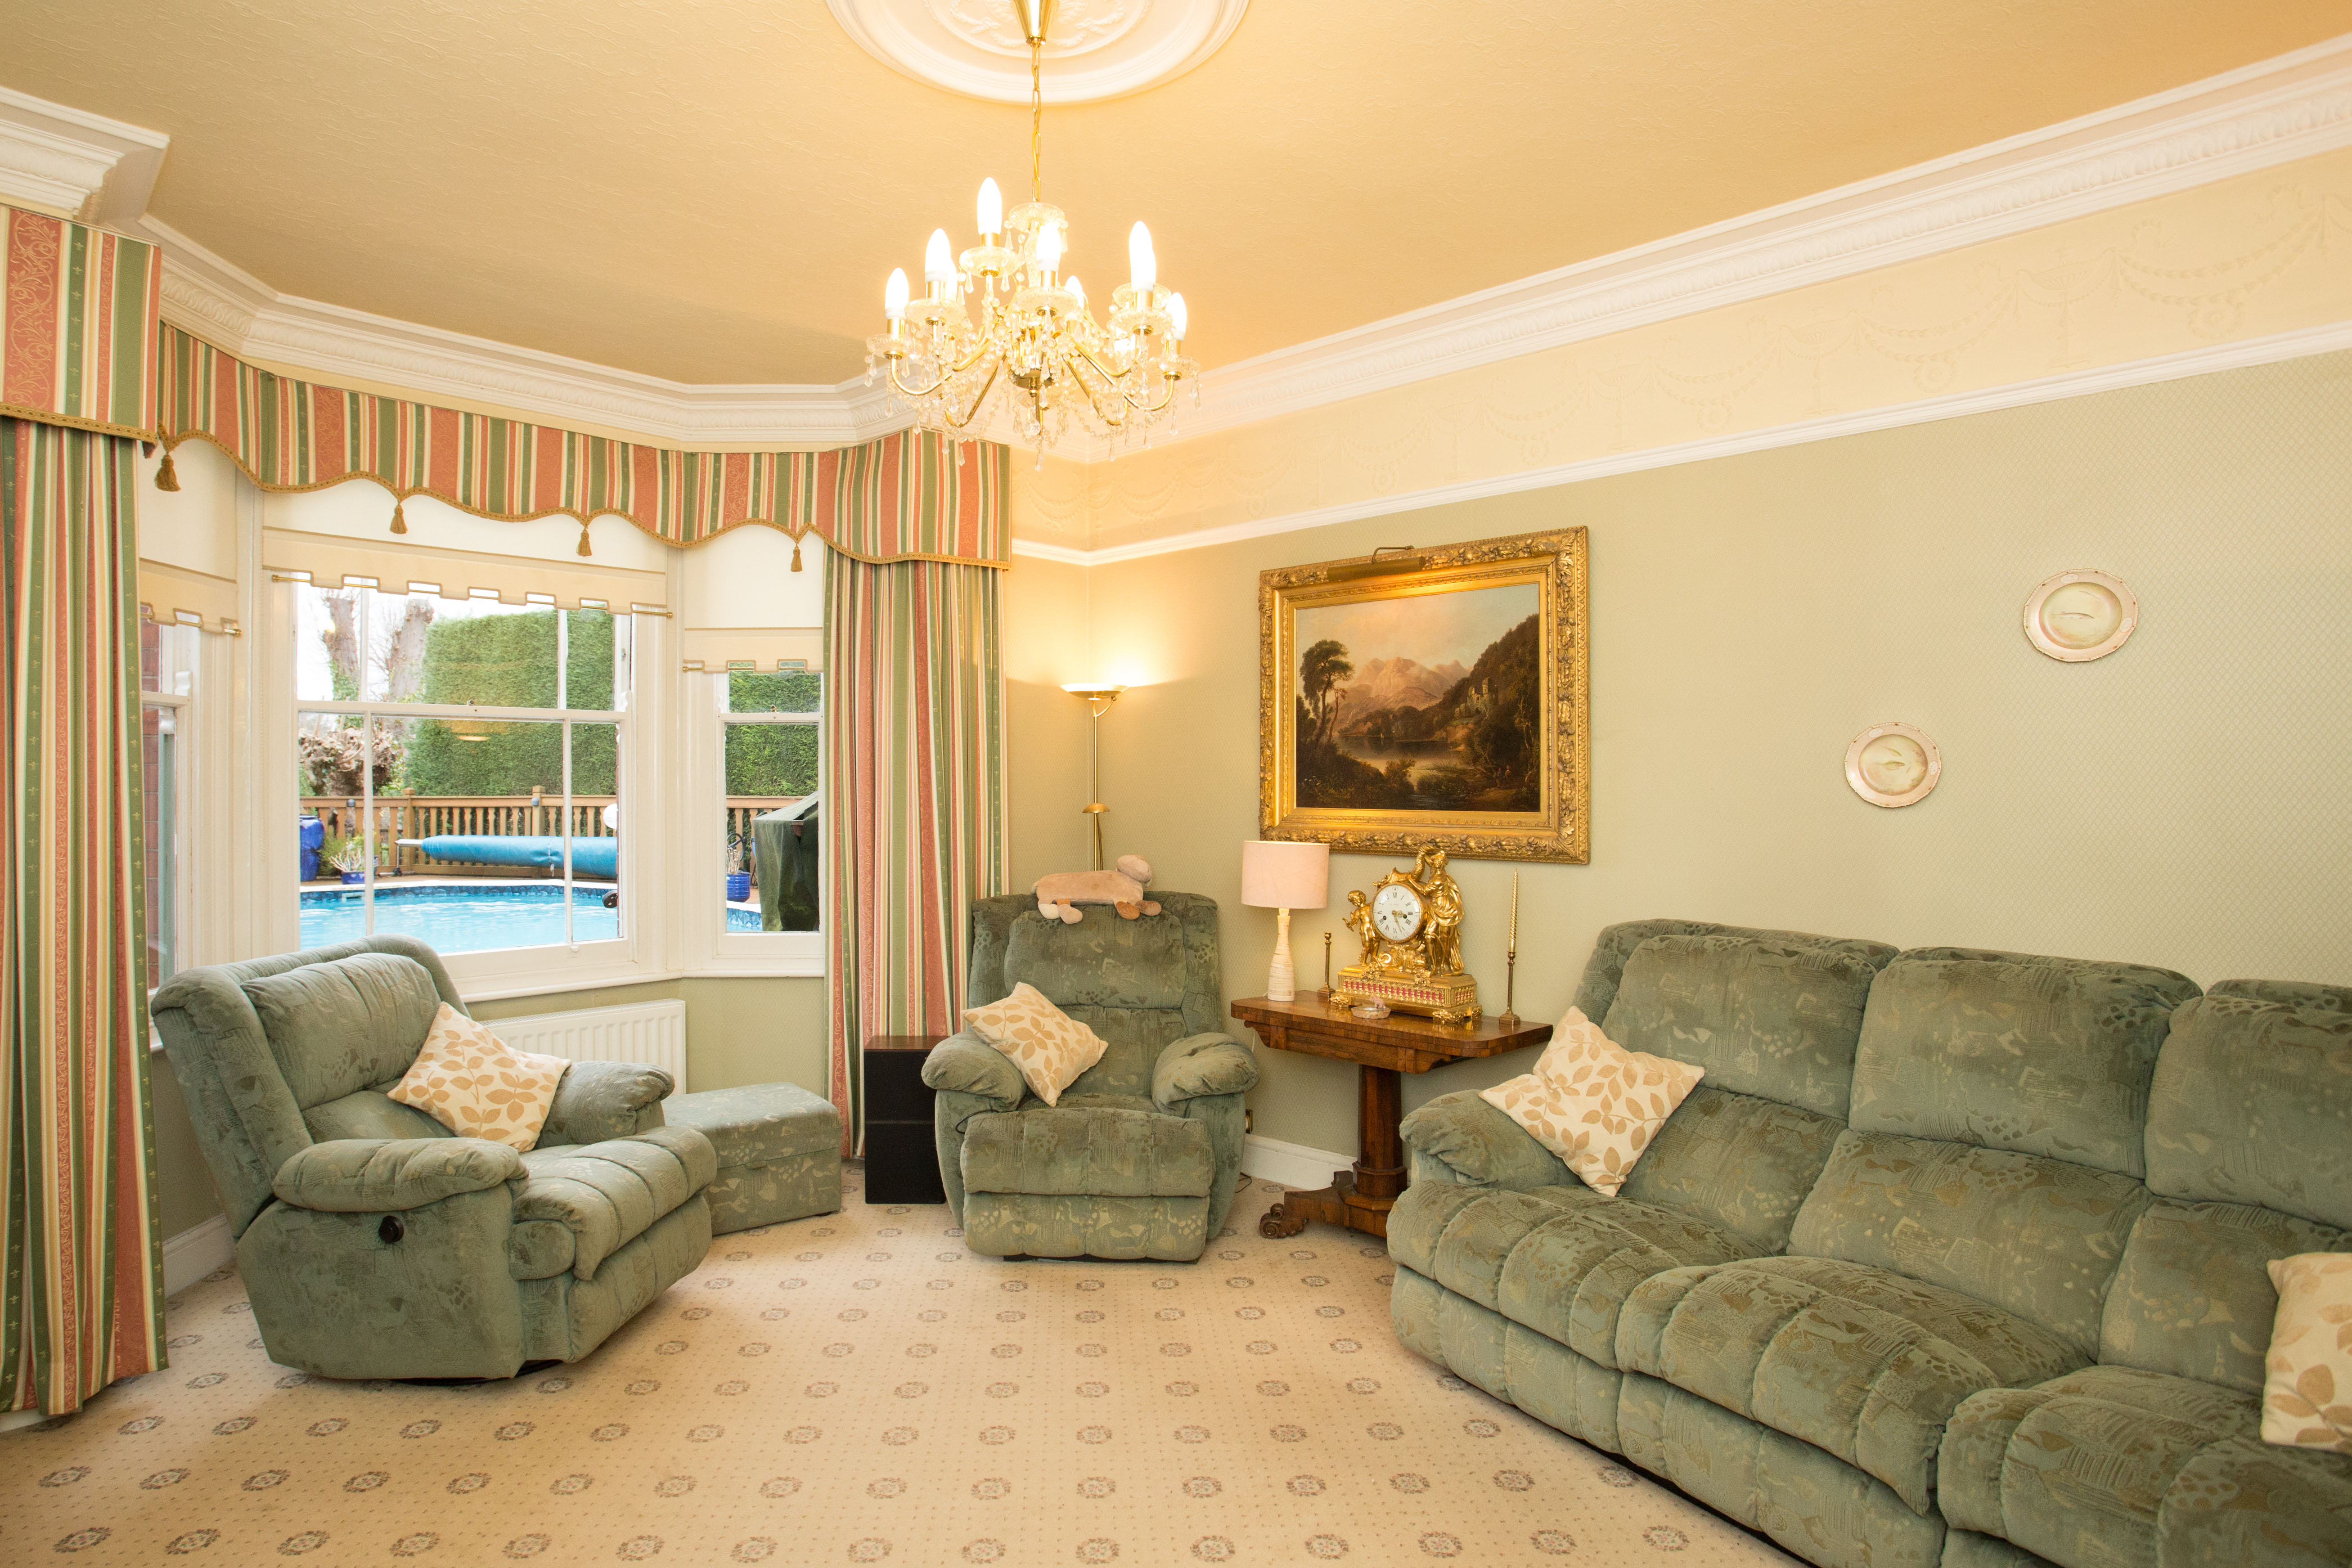 Real Estate Property Photography in Nottingham